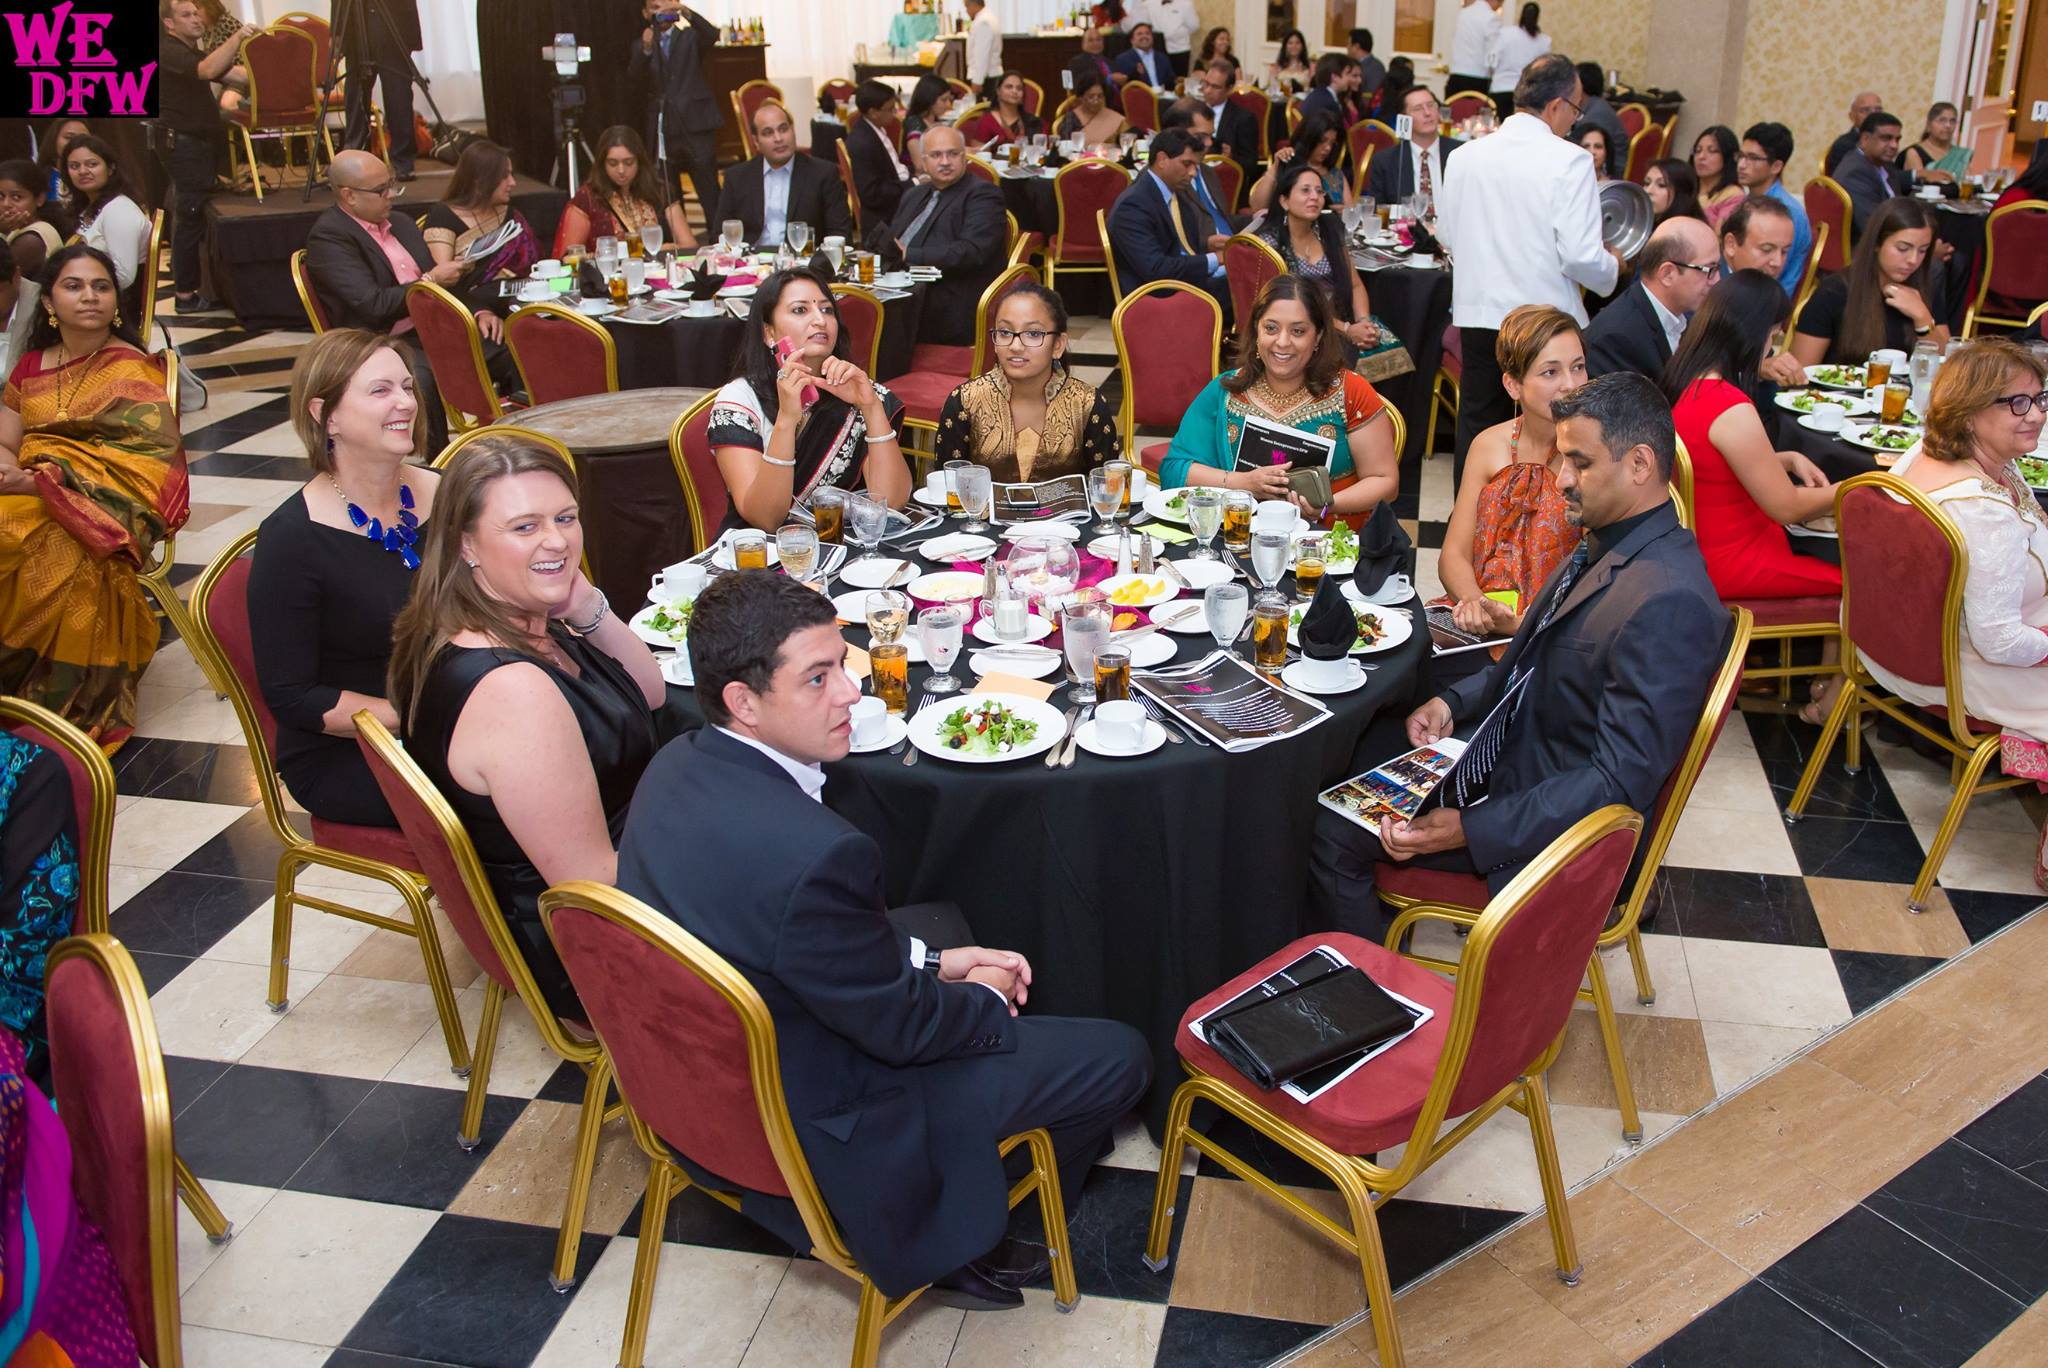 Sep 2015: Dinner Banquet - Speakers